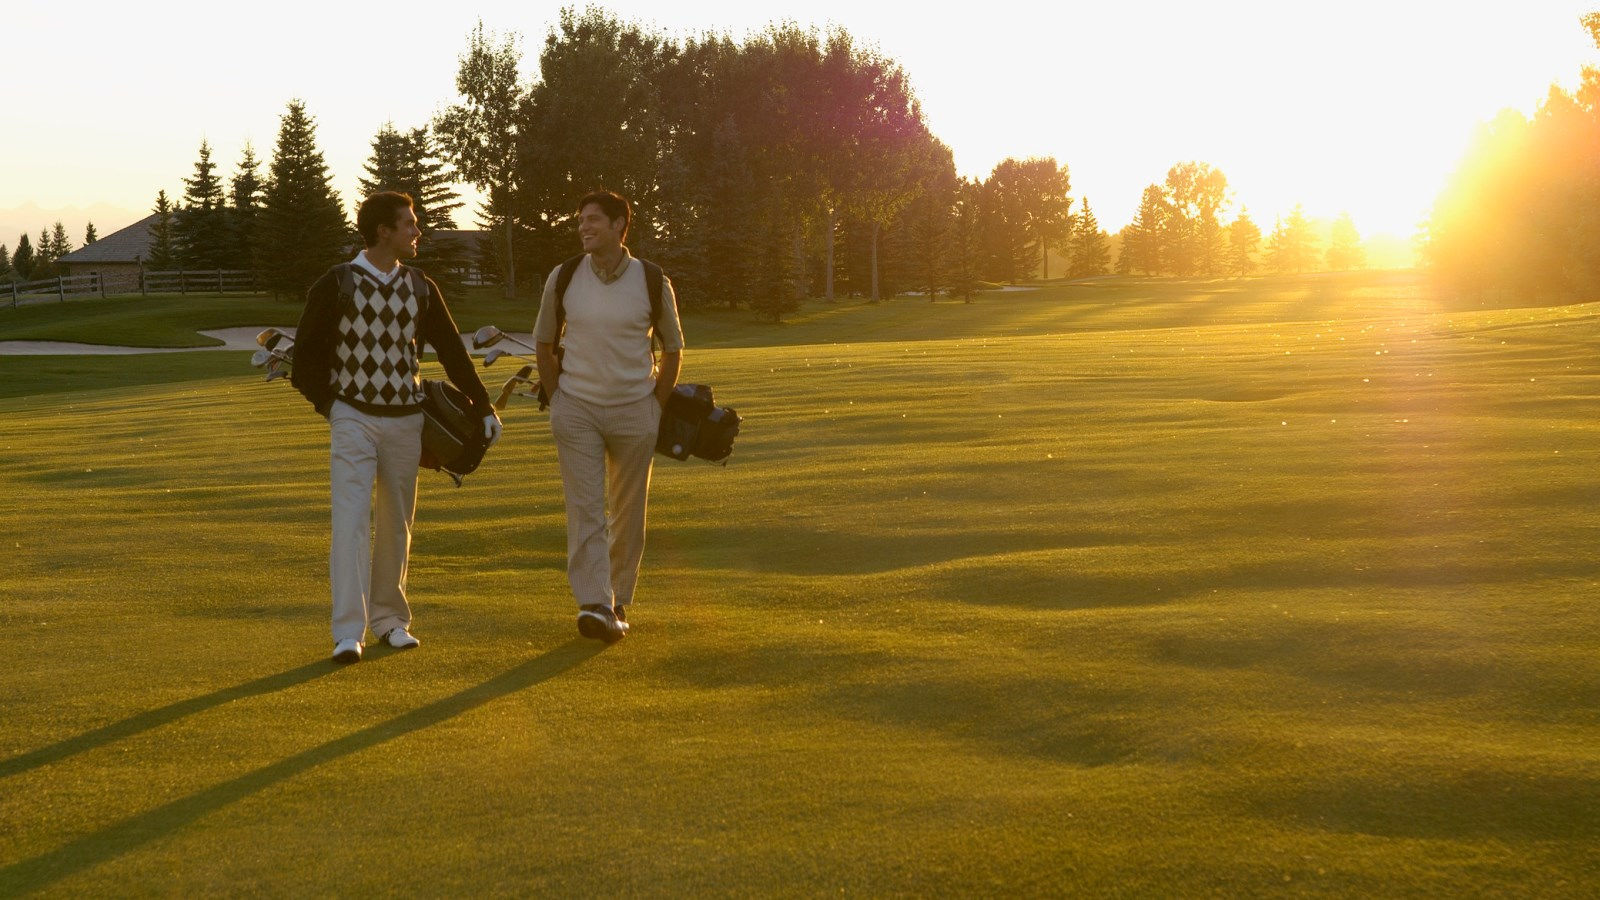 Winter Park Golf Courses | Sheraton Orlando North Hotel